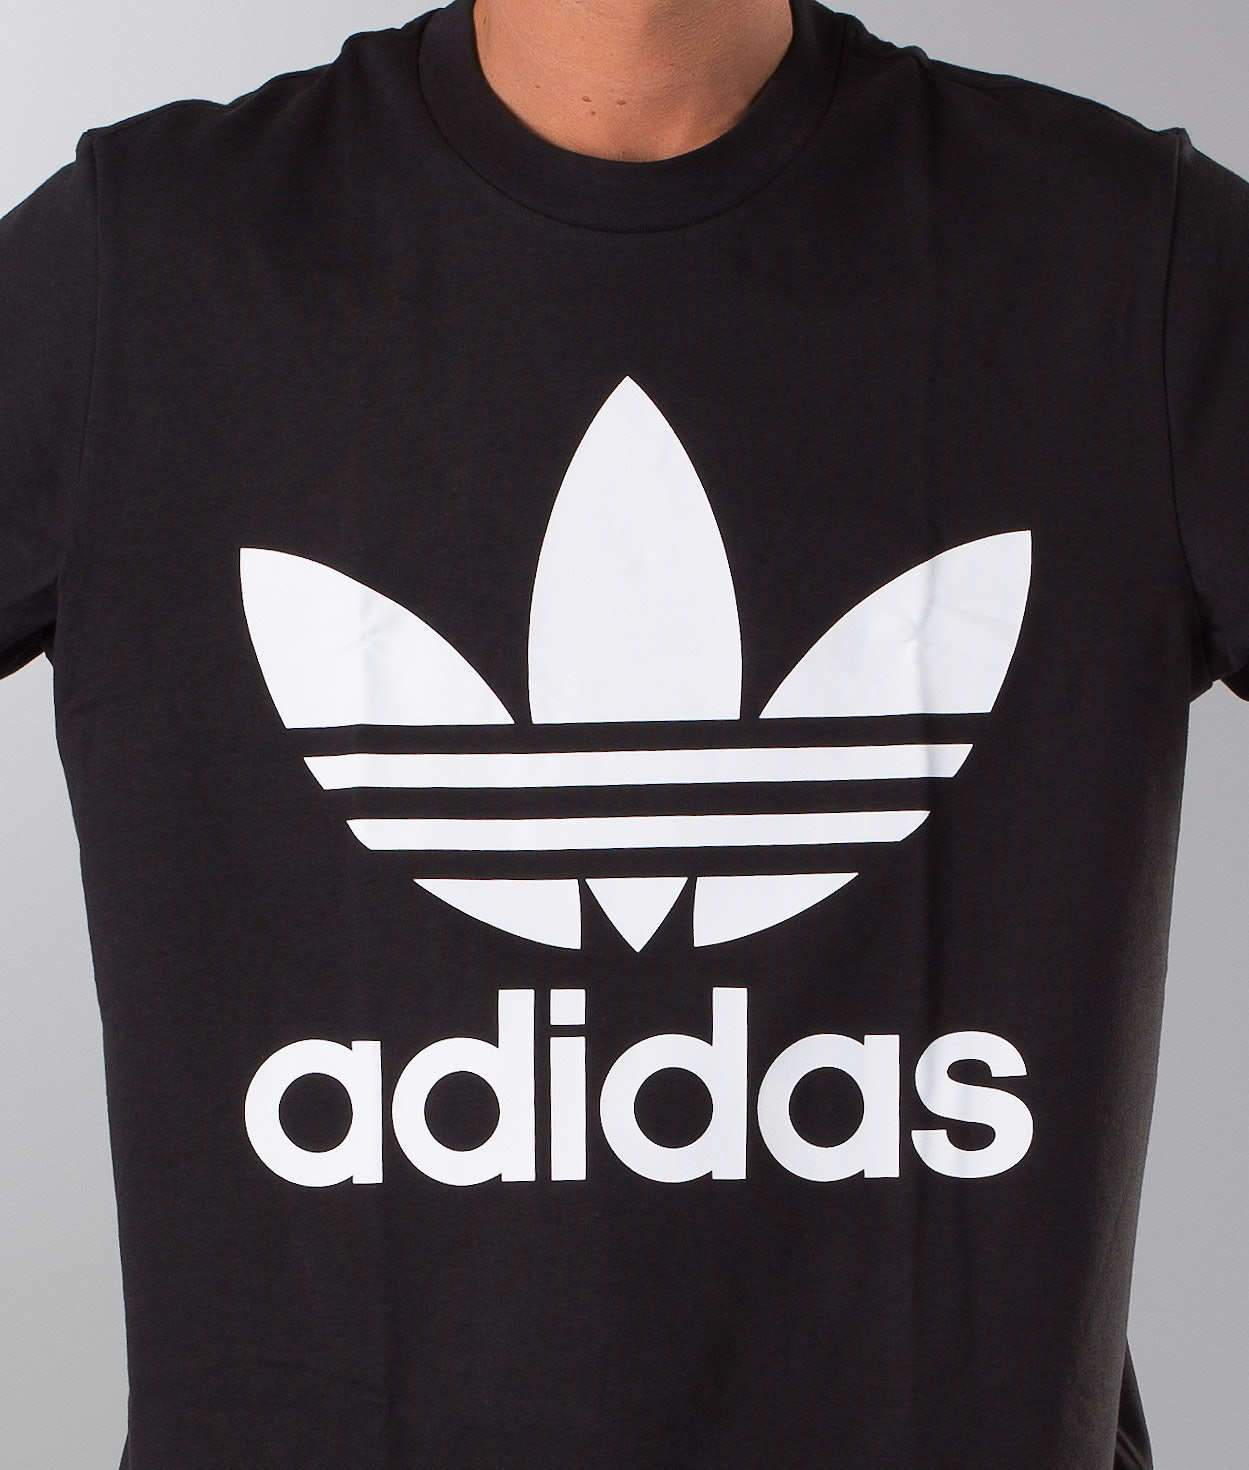 799321637930 Adidas Originals Oversized T-shirt Black - Ridestore.com